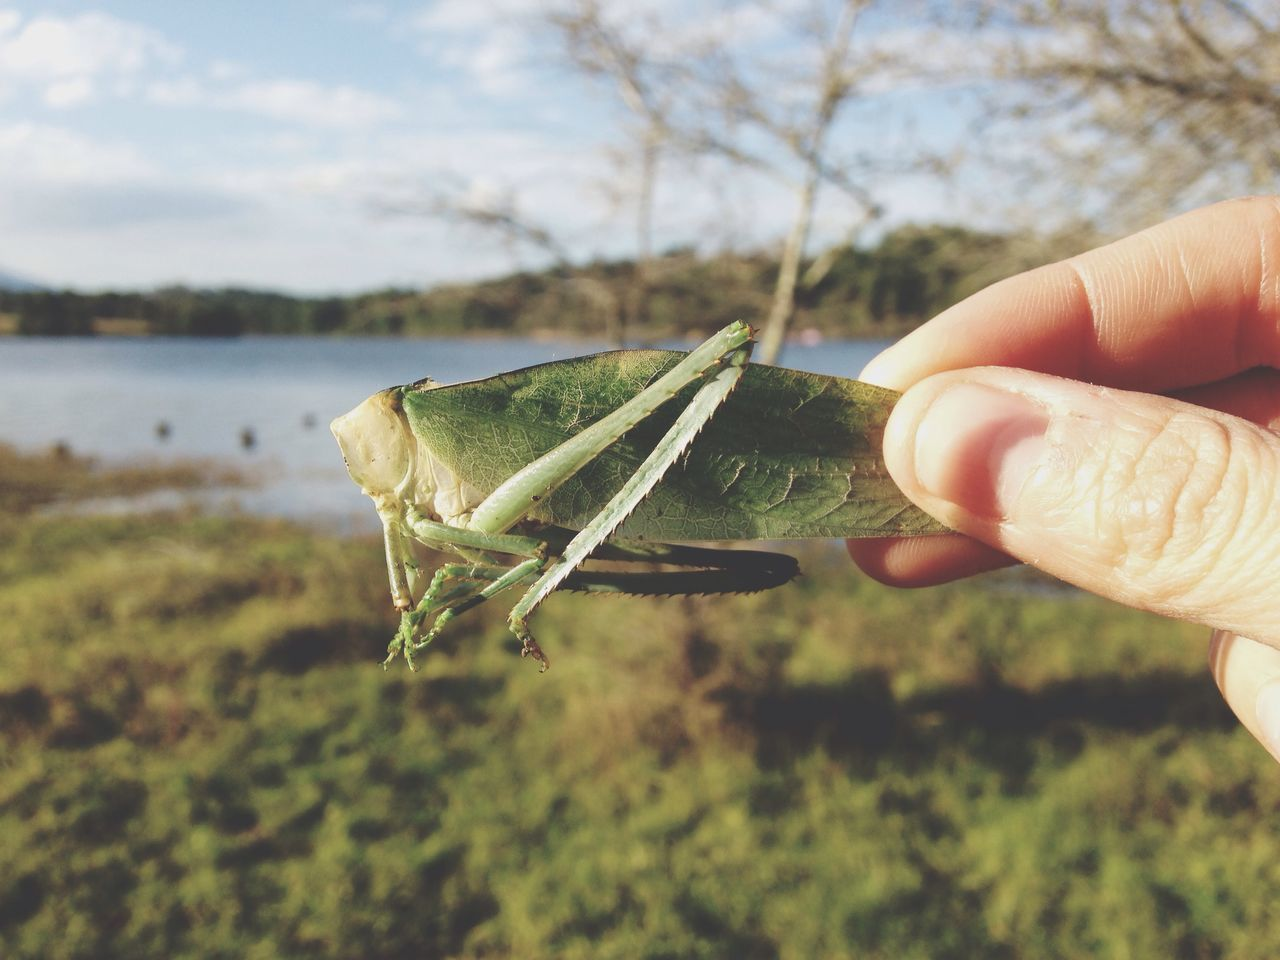 Close-Up Side View Of A Hand Holding Grasshopper